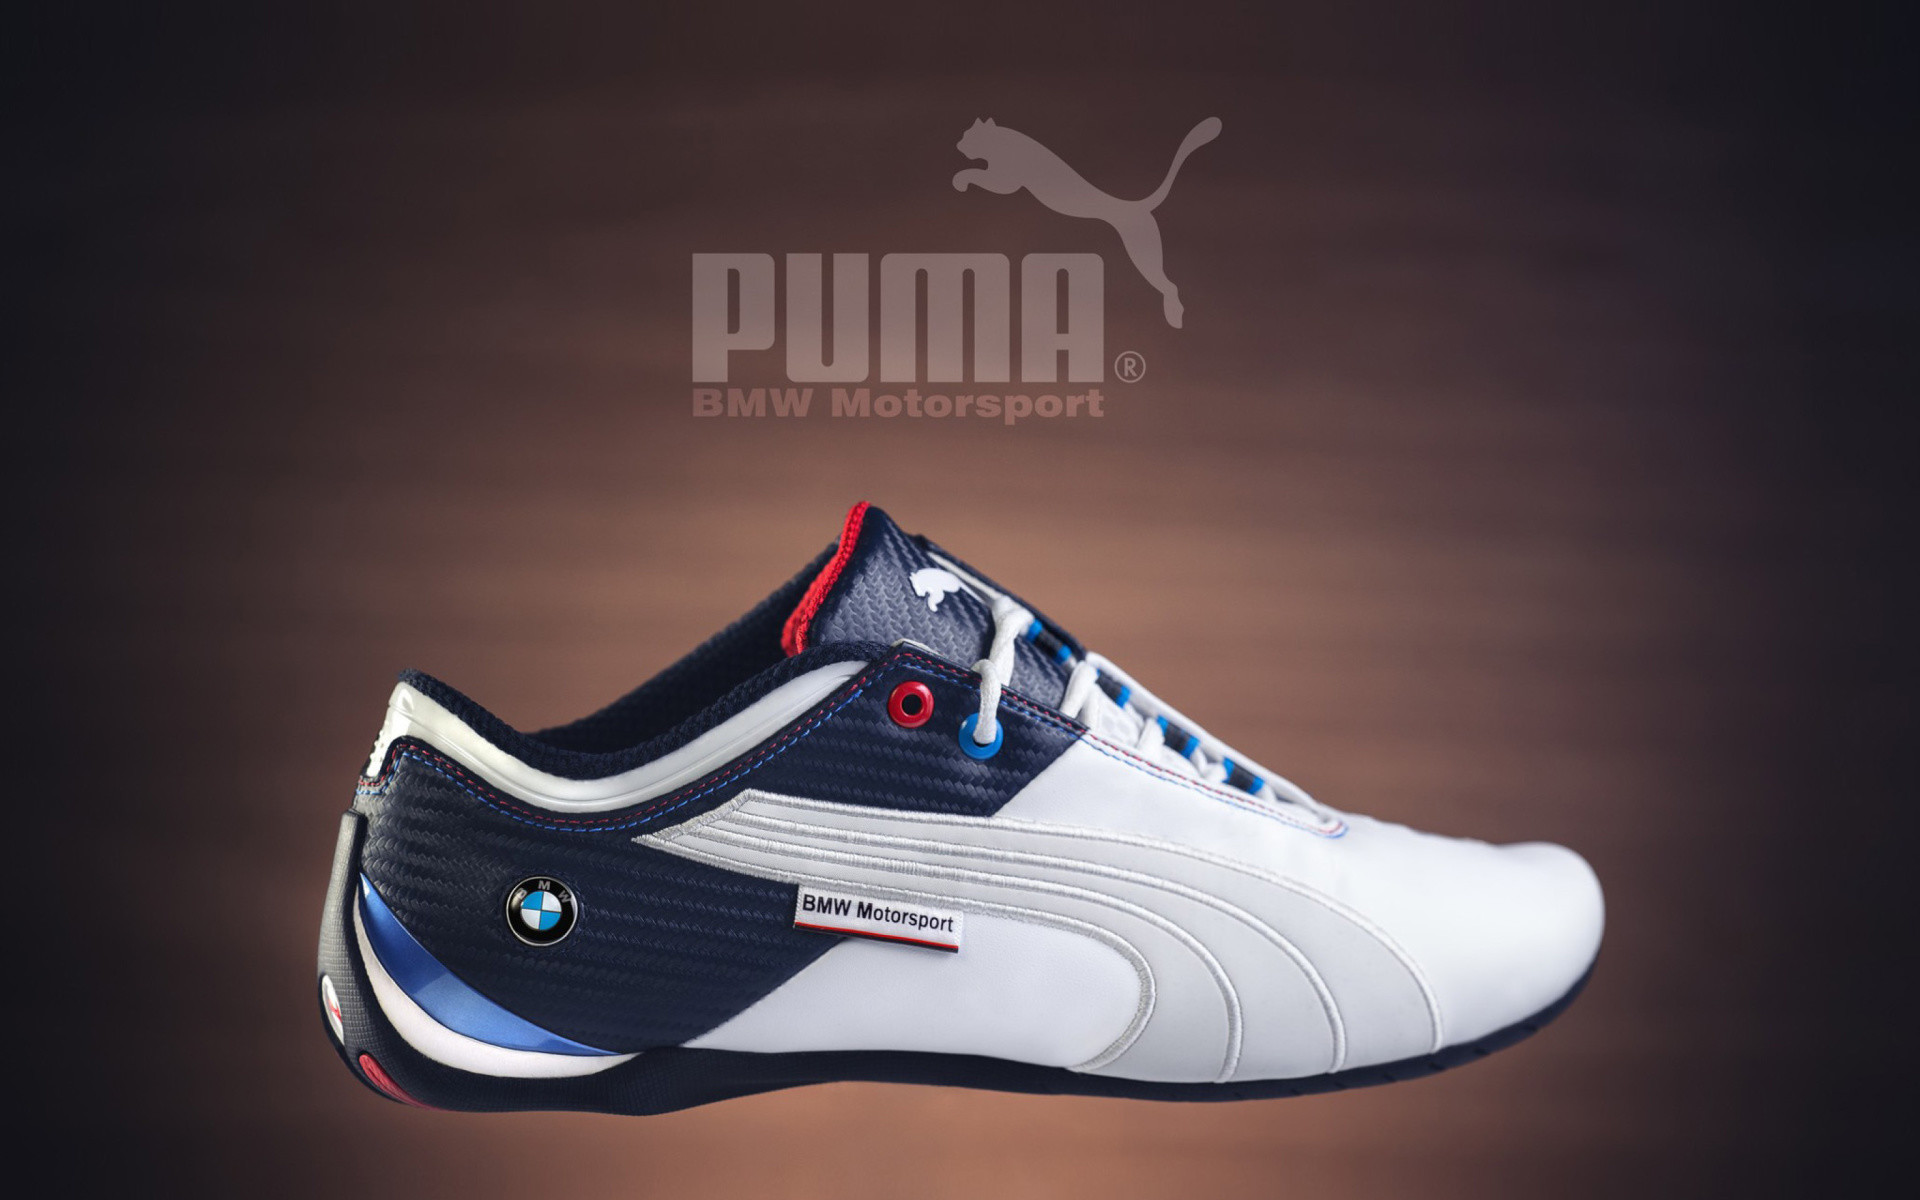 Puma Shoes Wallpapers 1